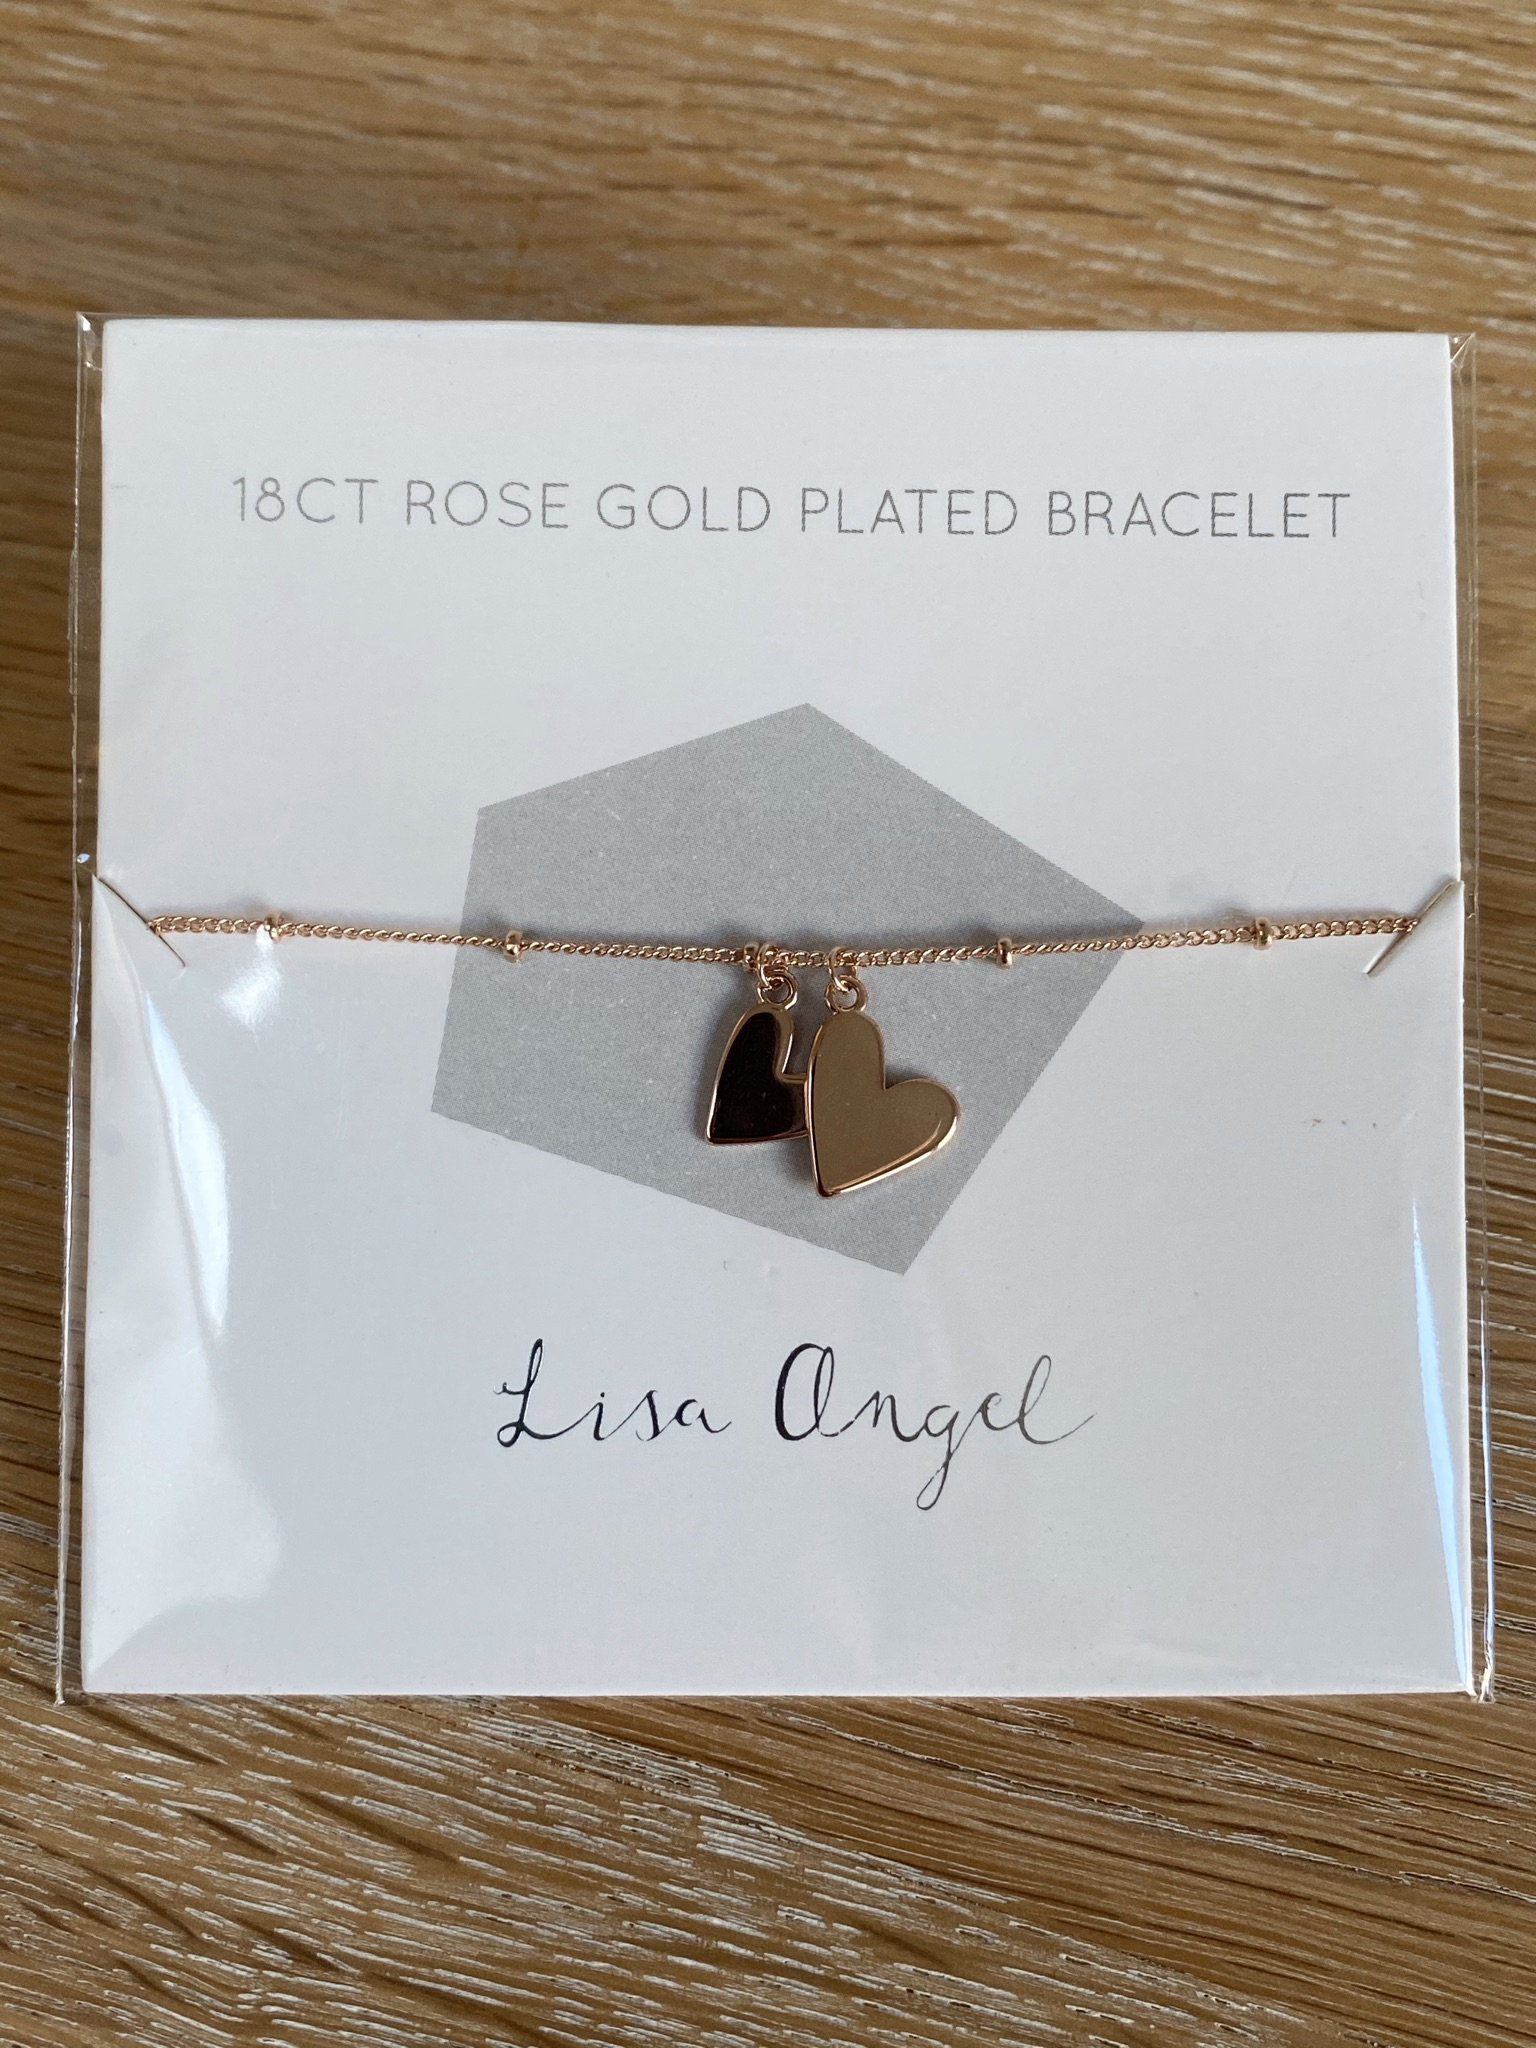 Lisa Angel Double Heart Bracelet